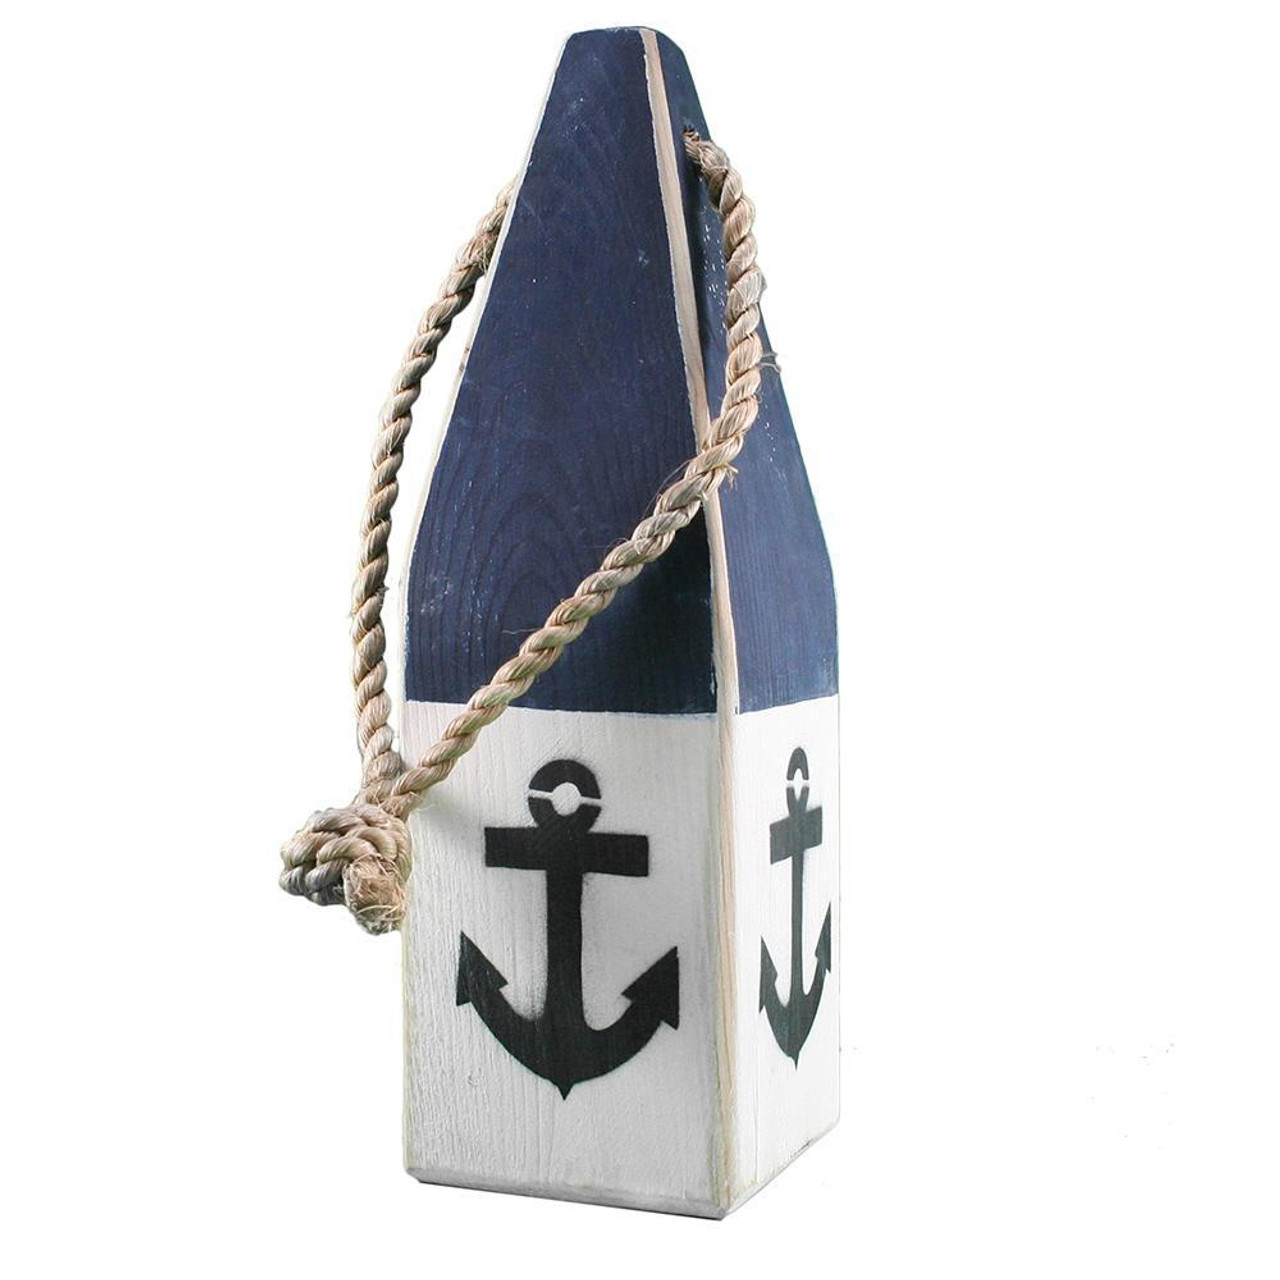 "Nautical Wood Buoy 12"" Navy/White with Anchor"